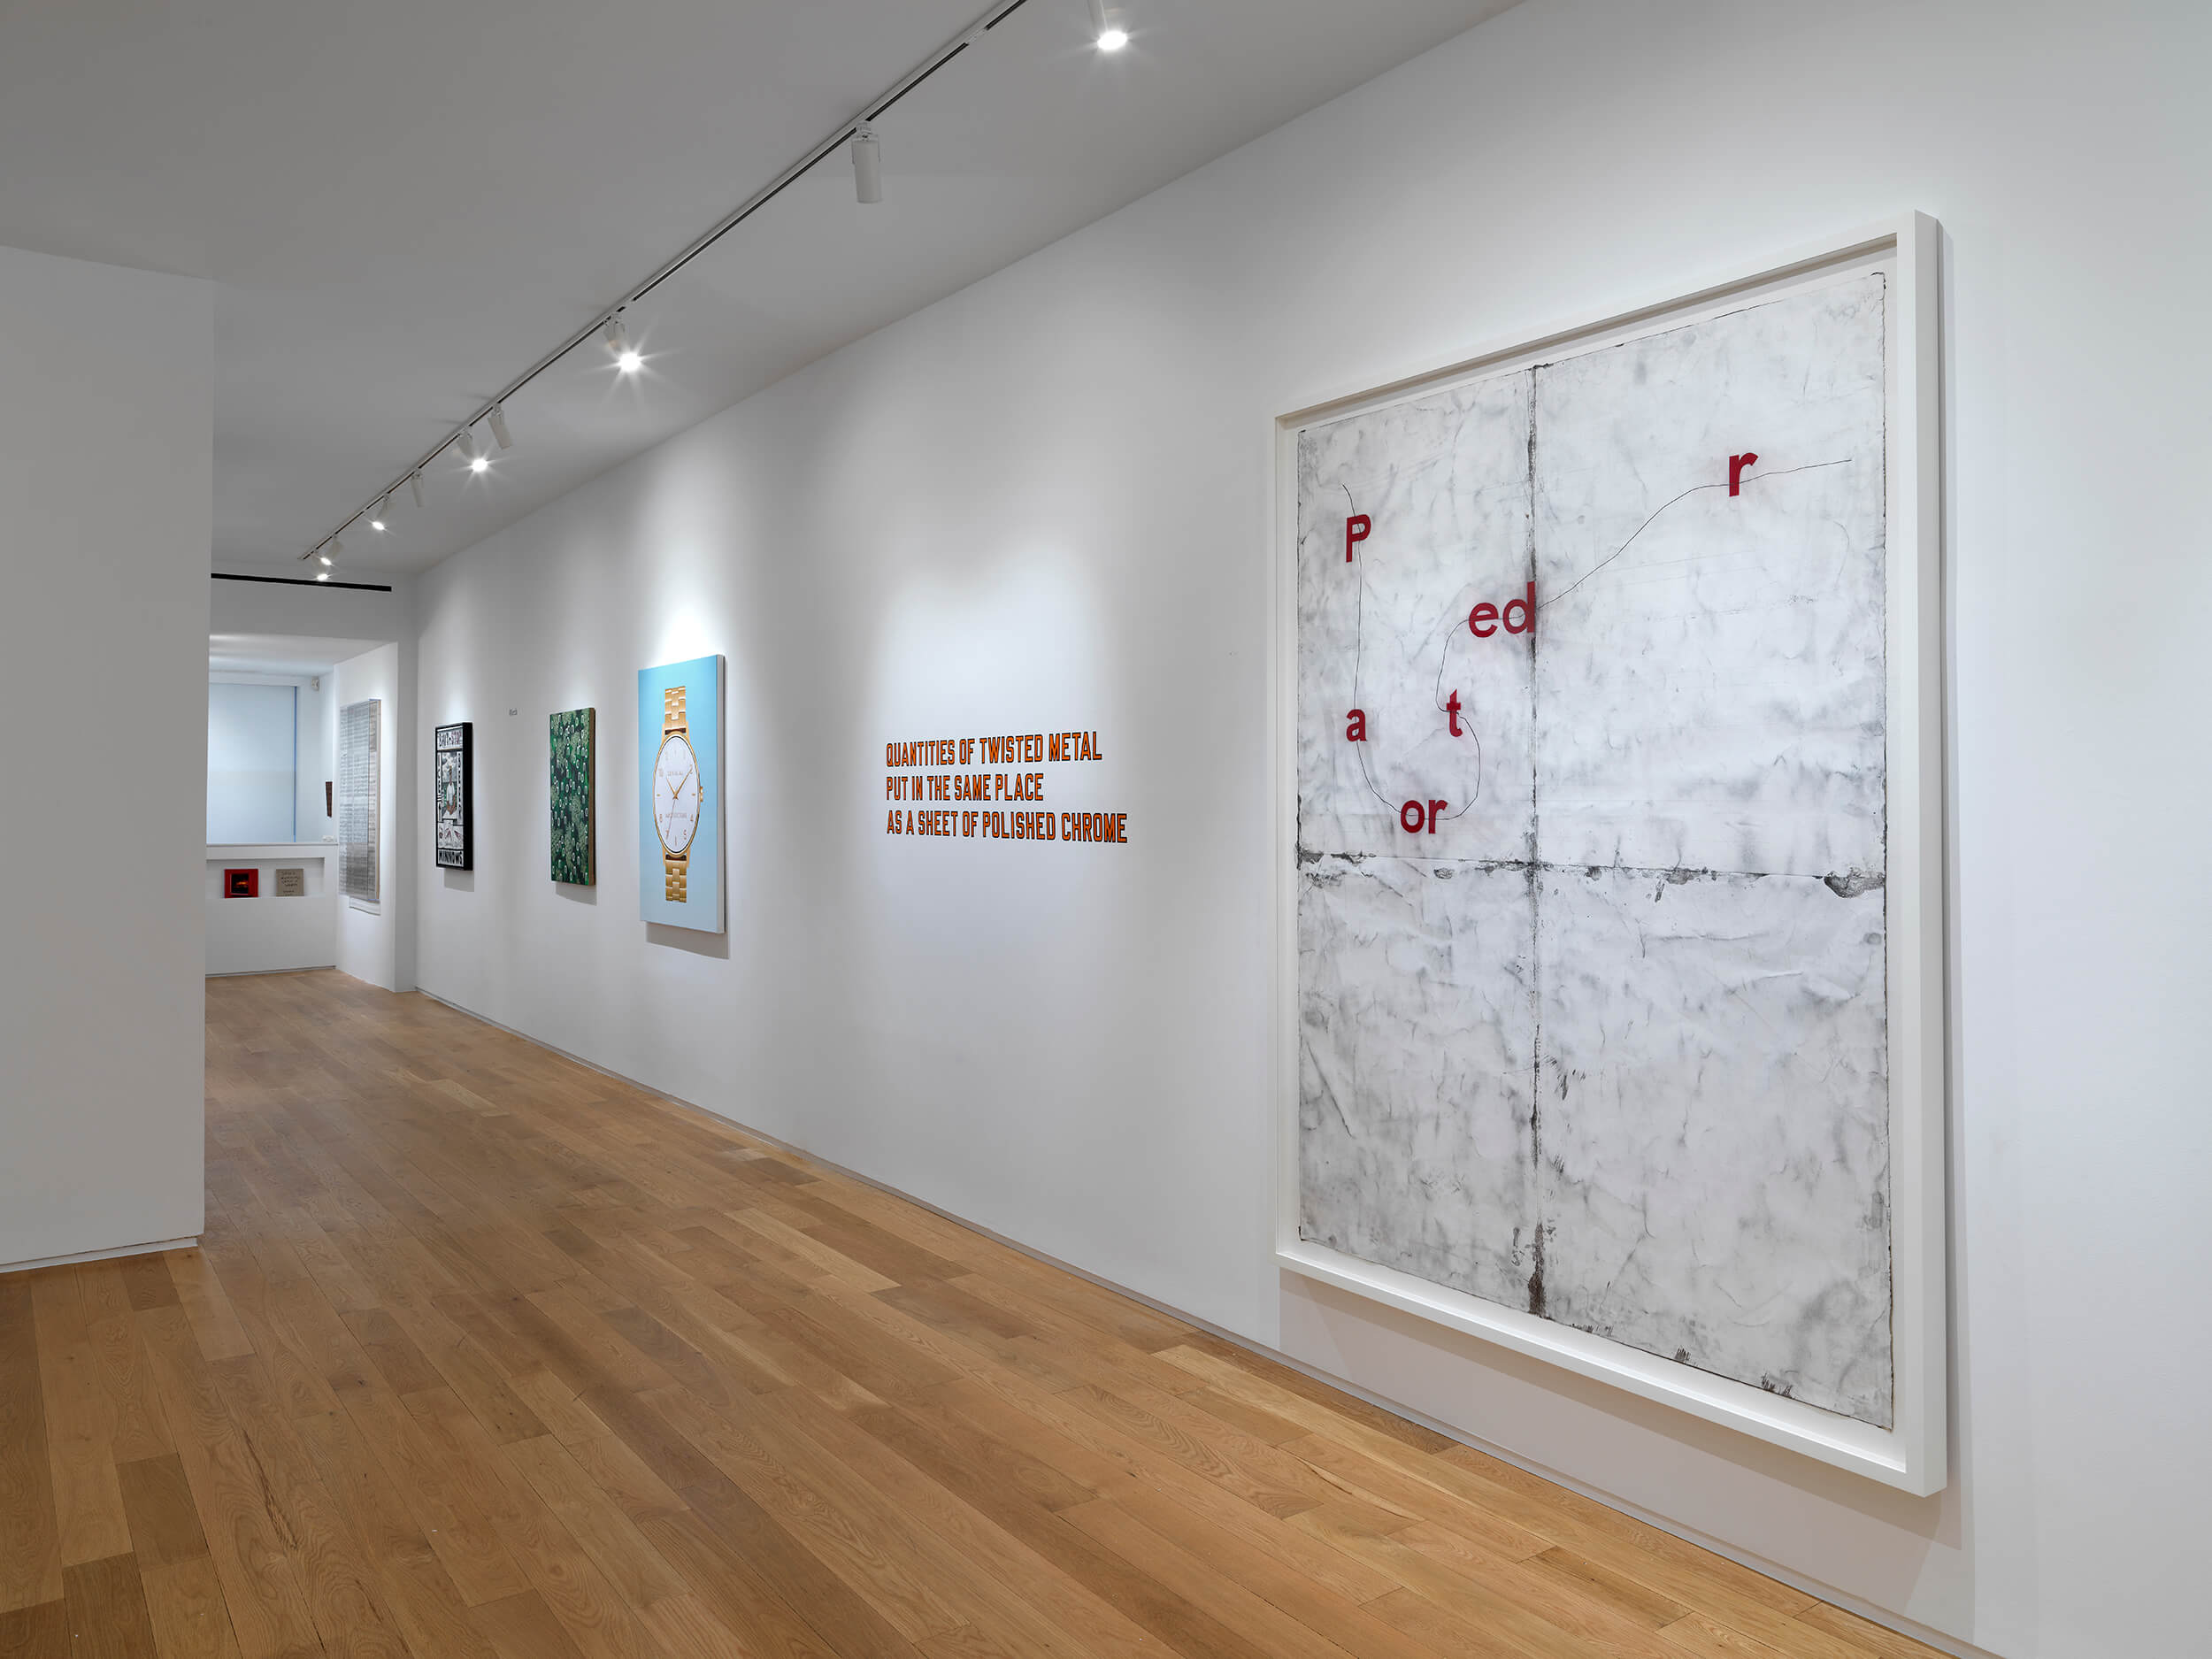 Installation Image of Words at Alexander Berggruen Gallery